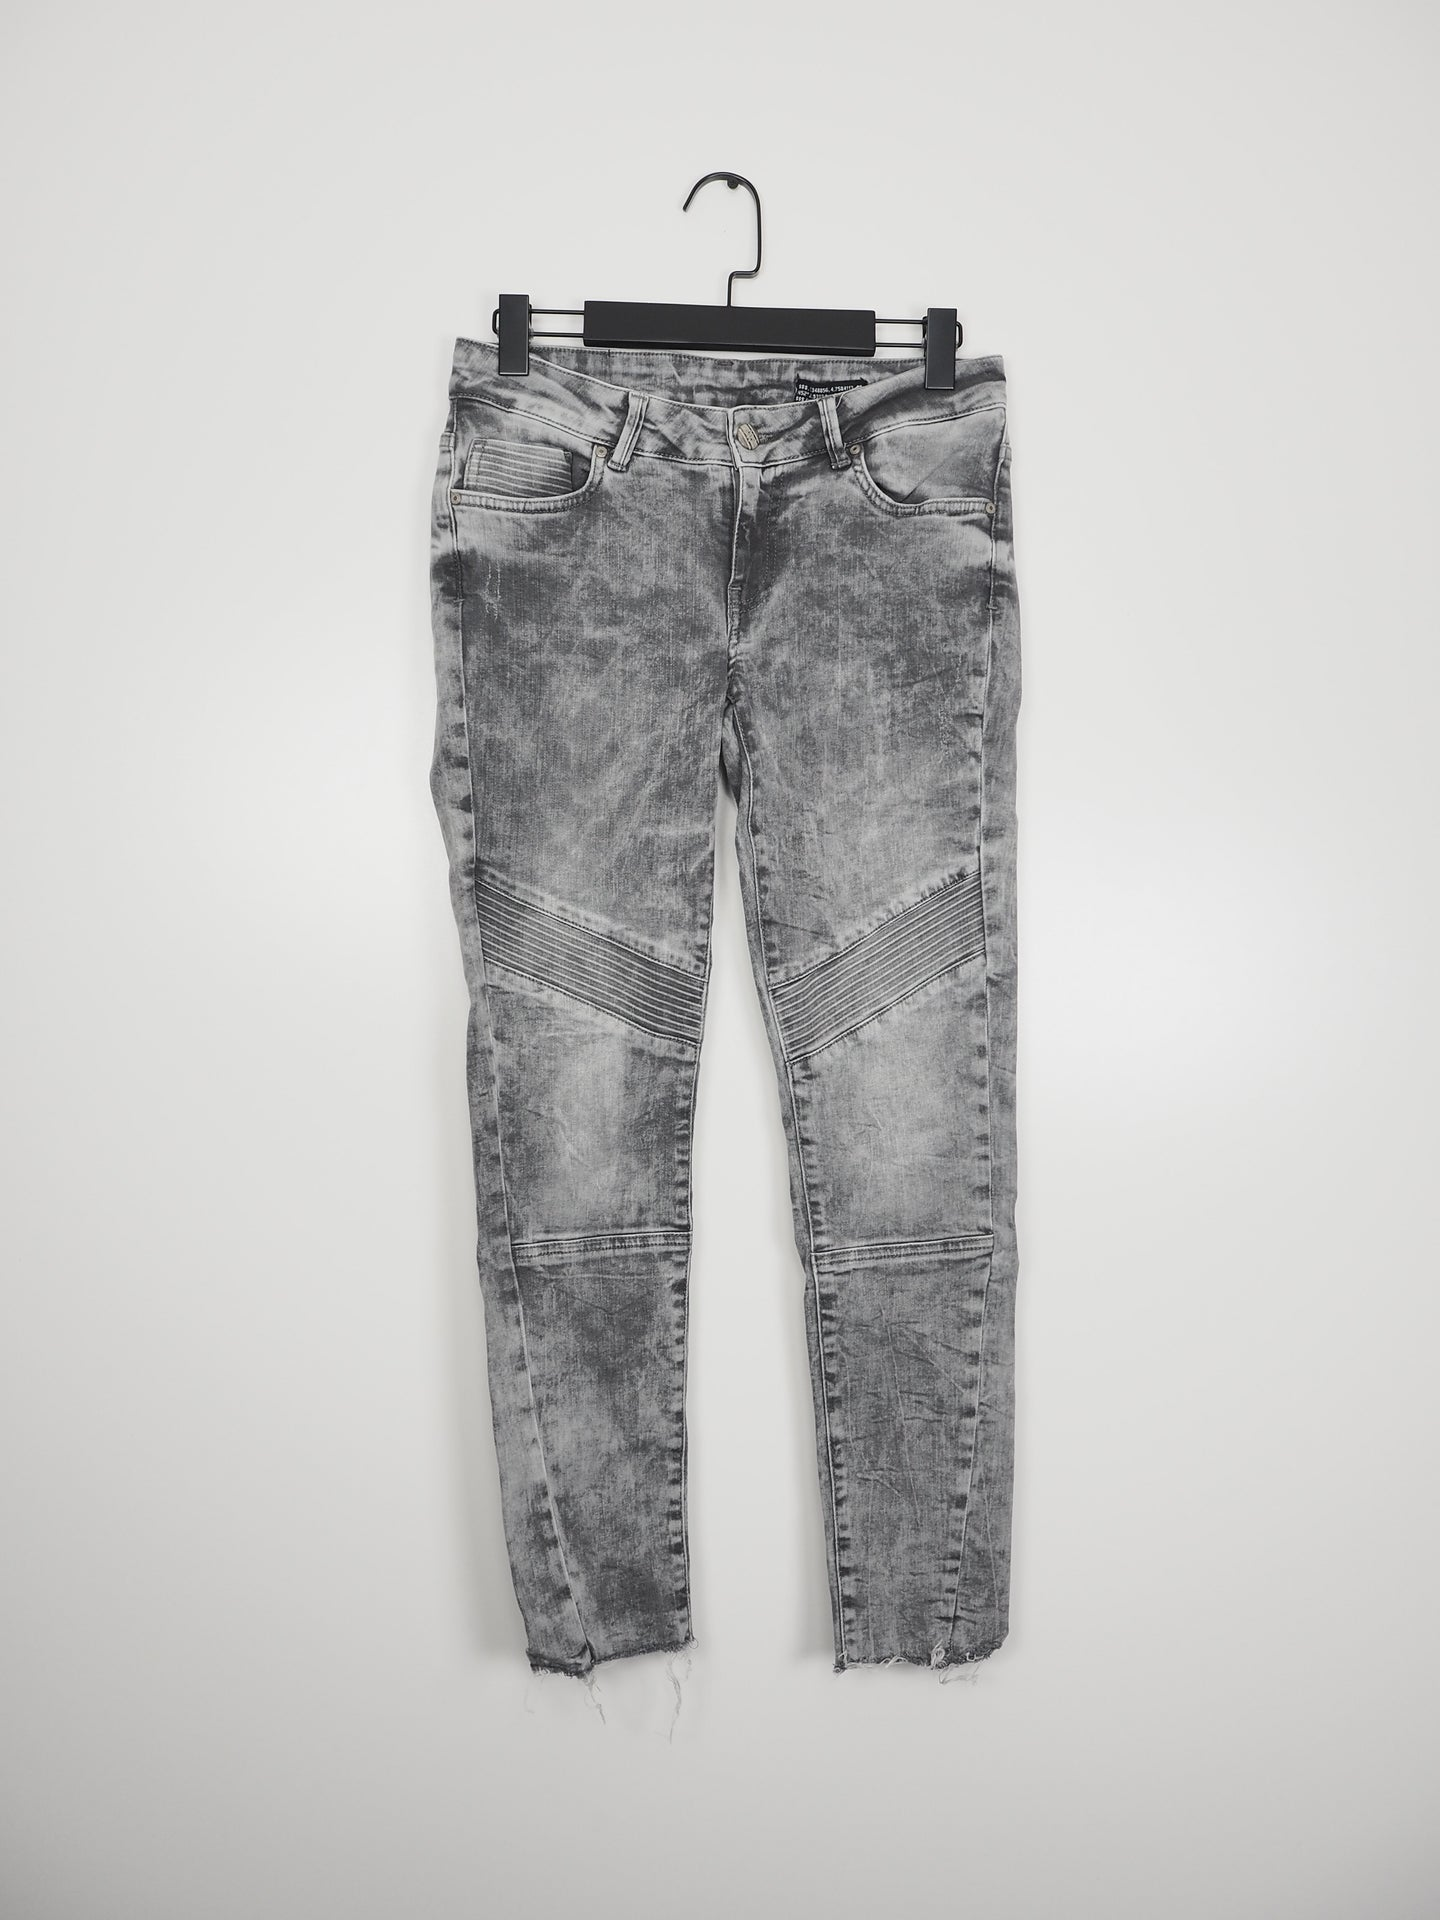 Urban grey jeans (Amy & Ivy)